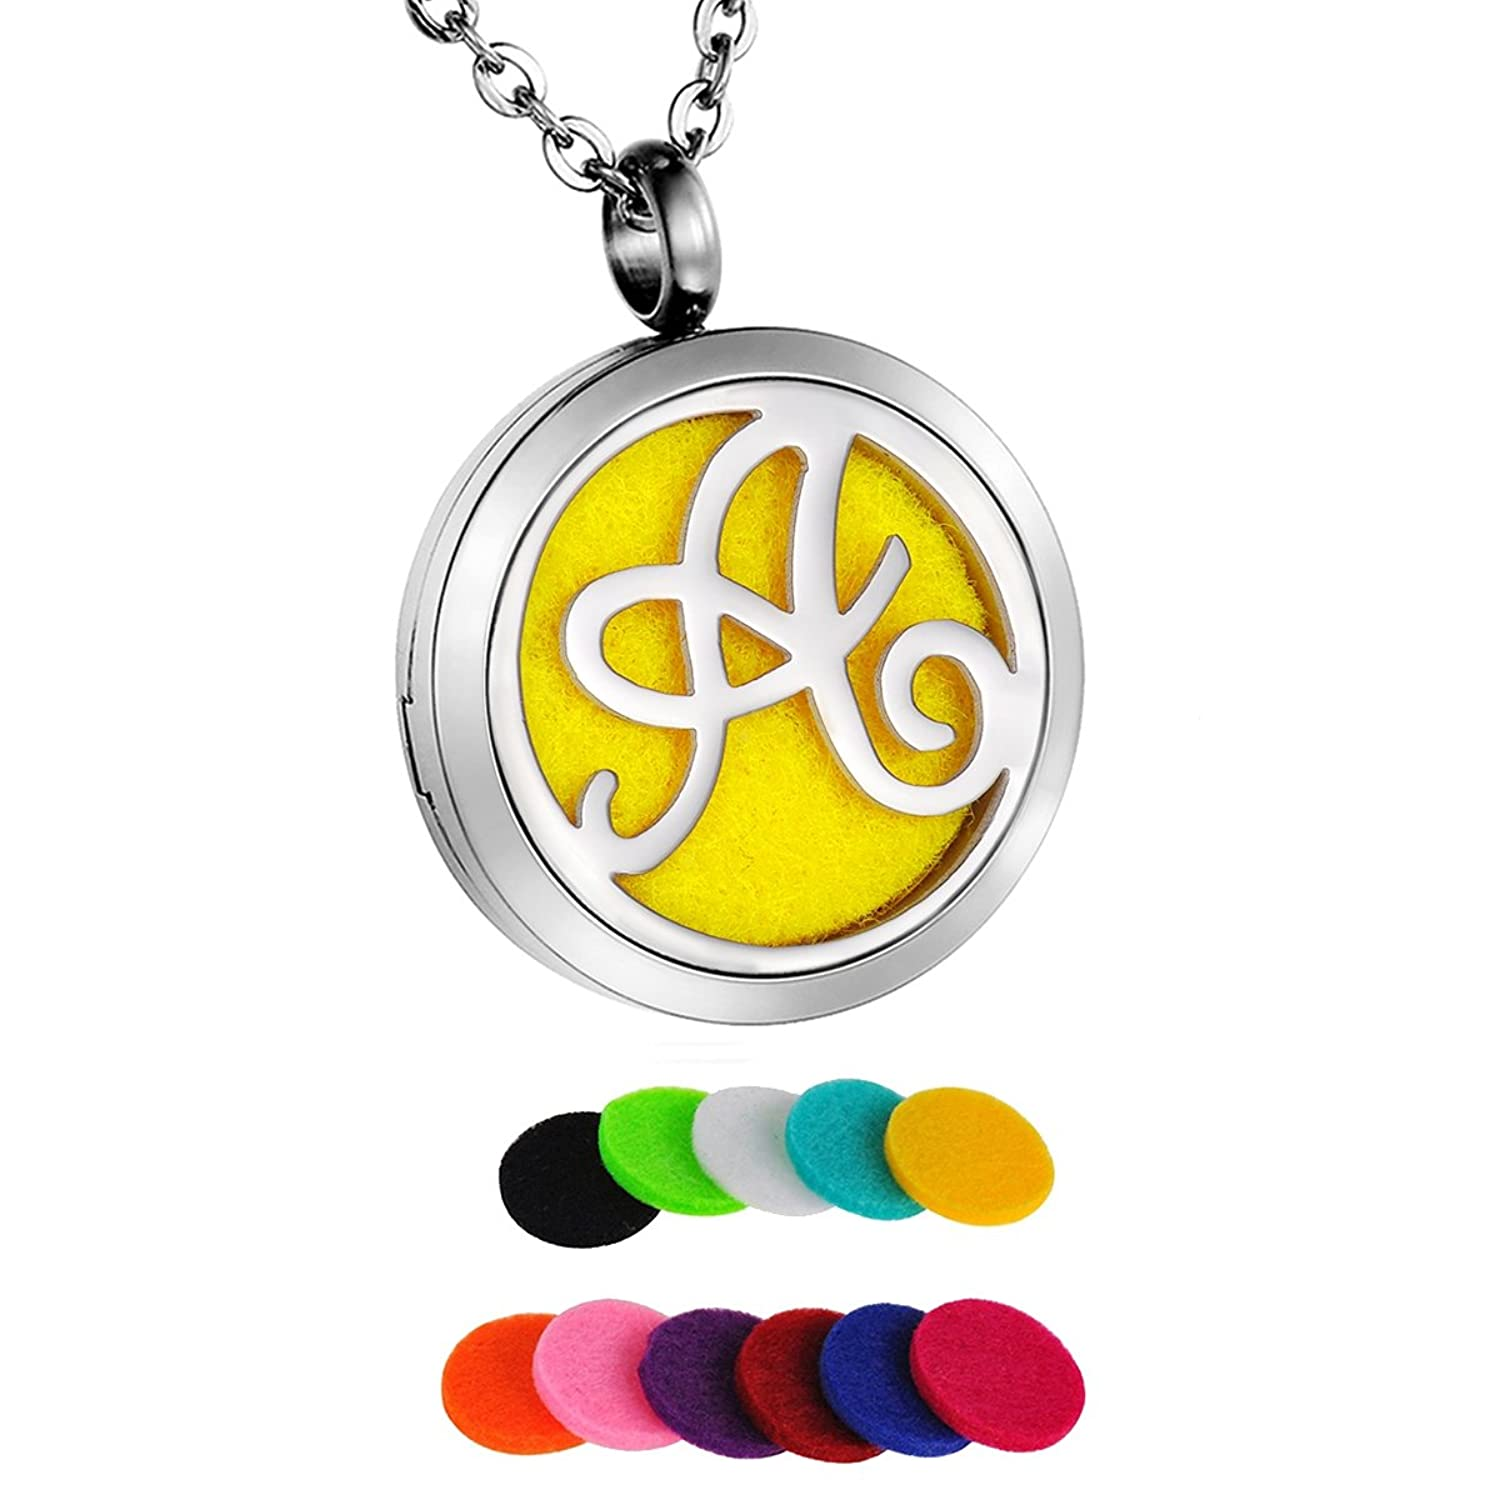 bling monogram custom monograms and oval jewlery pin locket lockets